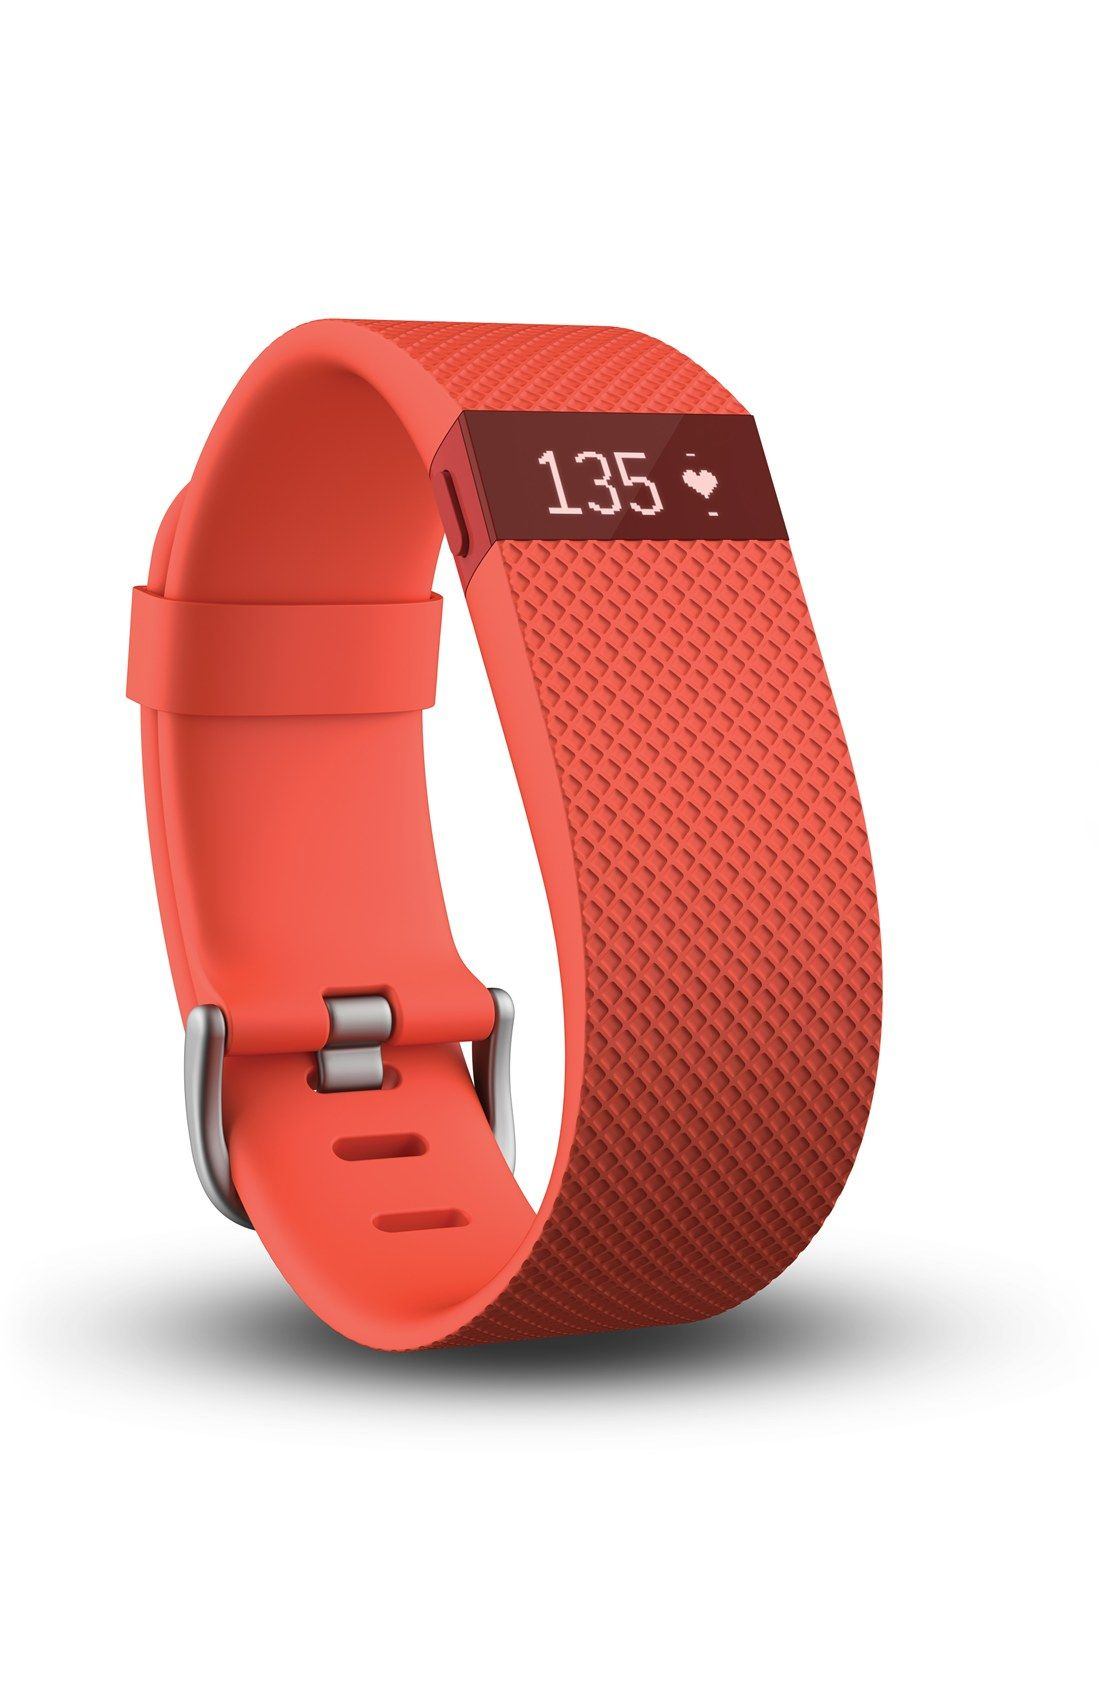 Fitbit Charge Hr Wireless Activity Heart Rate Tracker Fitbit Charge Hr Fitbit Charge Fitbit